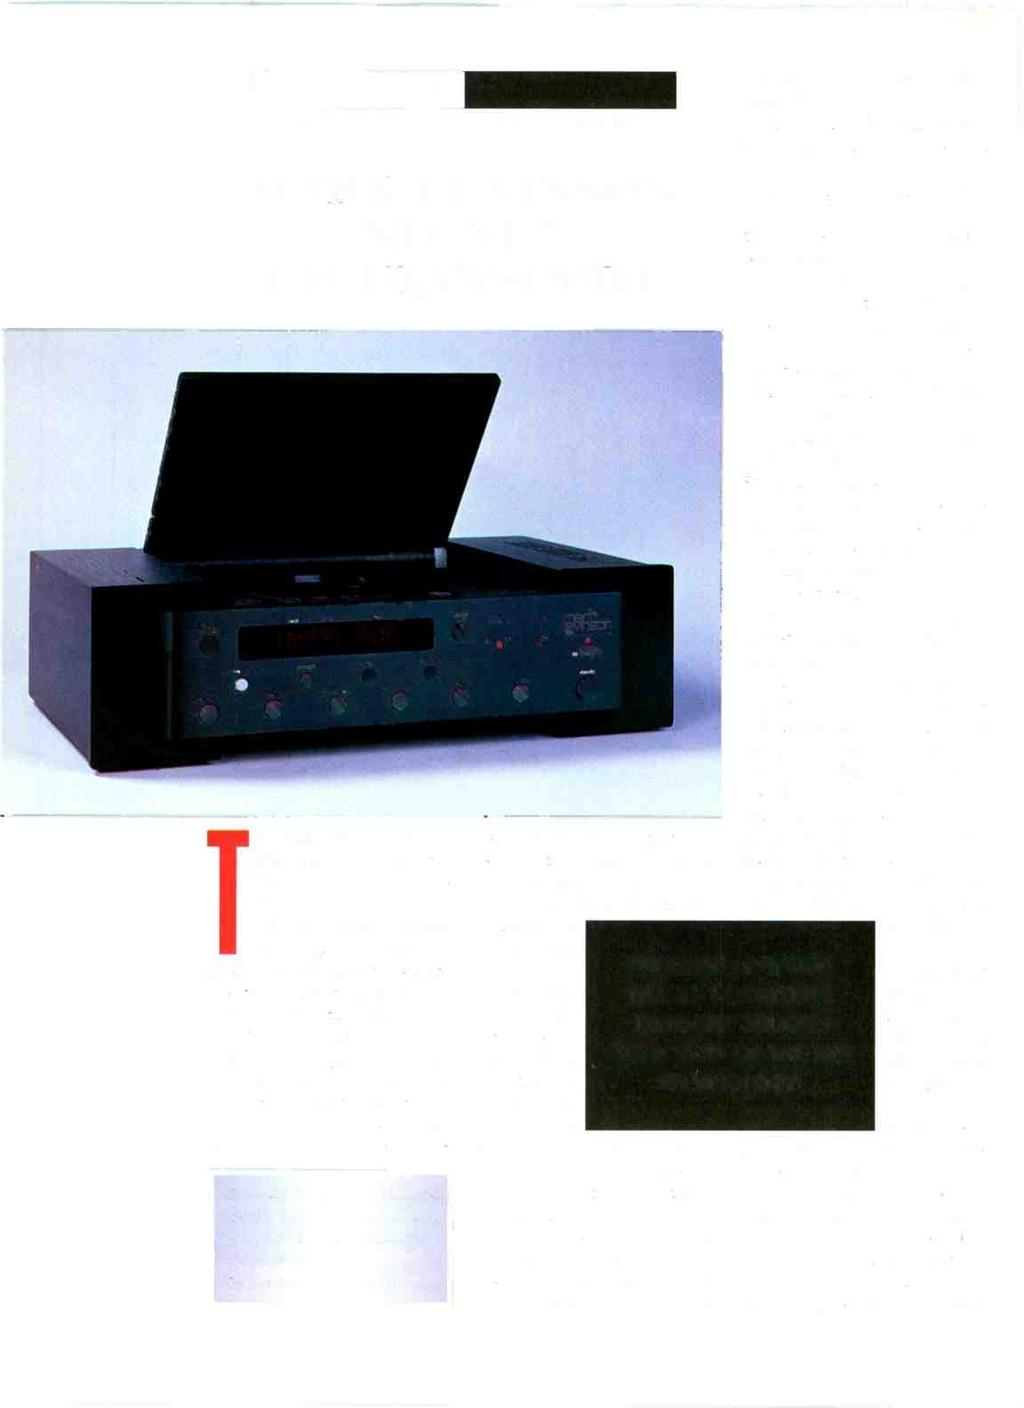 AURICLE ANTHONY H. CORDESMAN MARK LEVINSON NO. 31.5 CD TRANSPORT The Mark Levinson No. 31.5 is truly of reference quality.